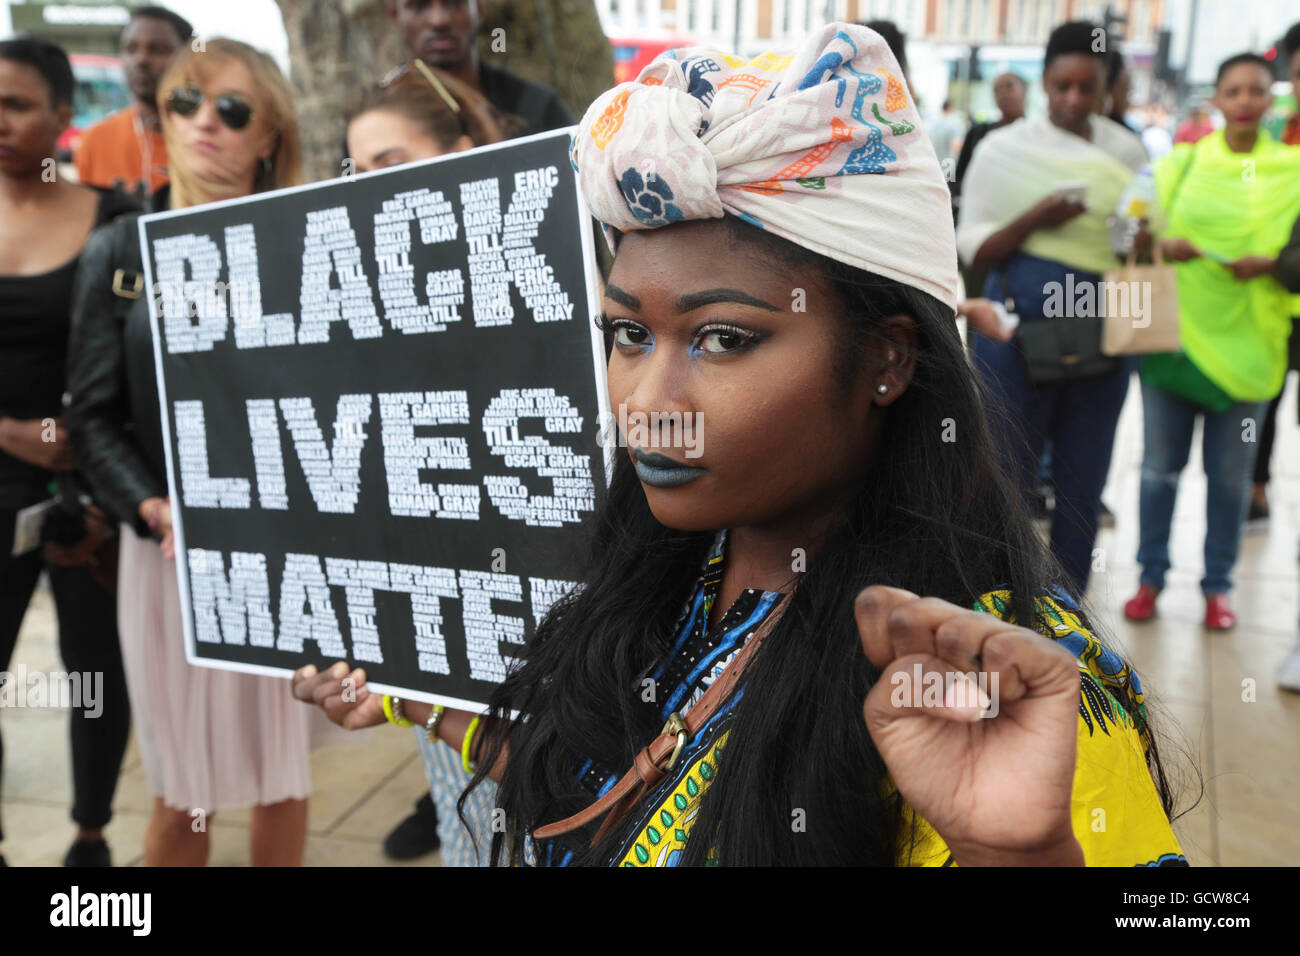 London UK. 09/07/2016 Woman at Black Lives Matter rally in response to high profile shootings of African Americans - Stock Image